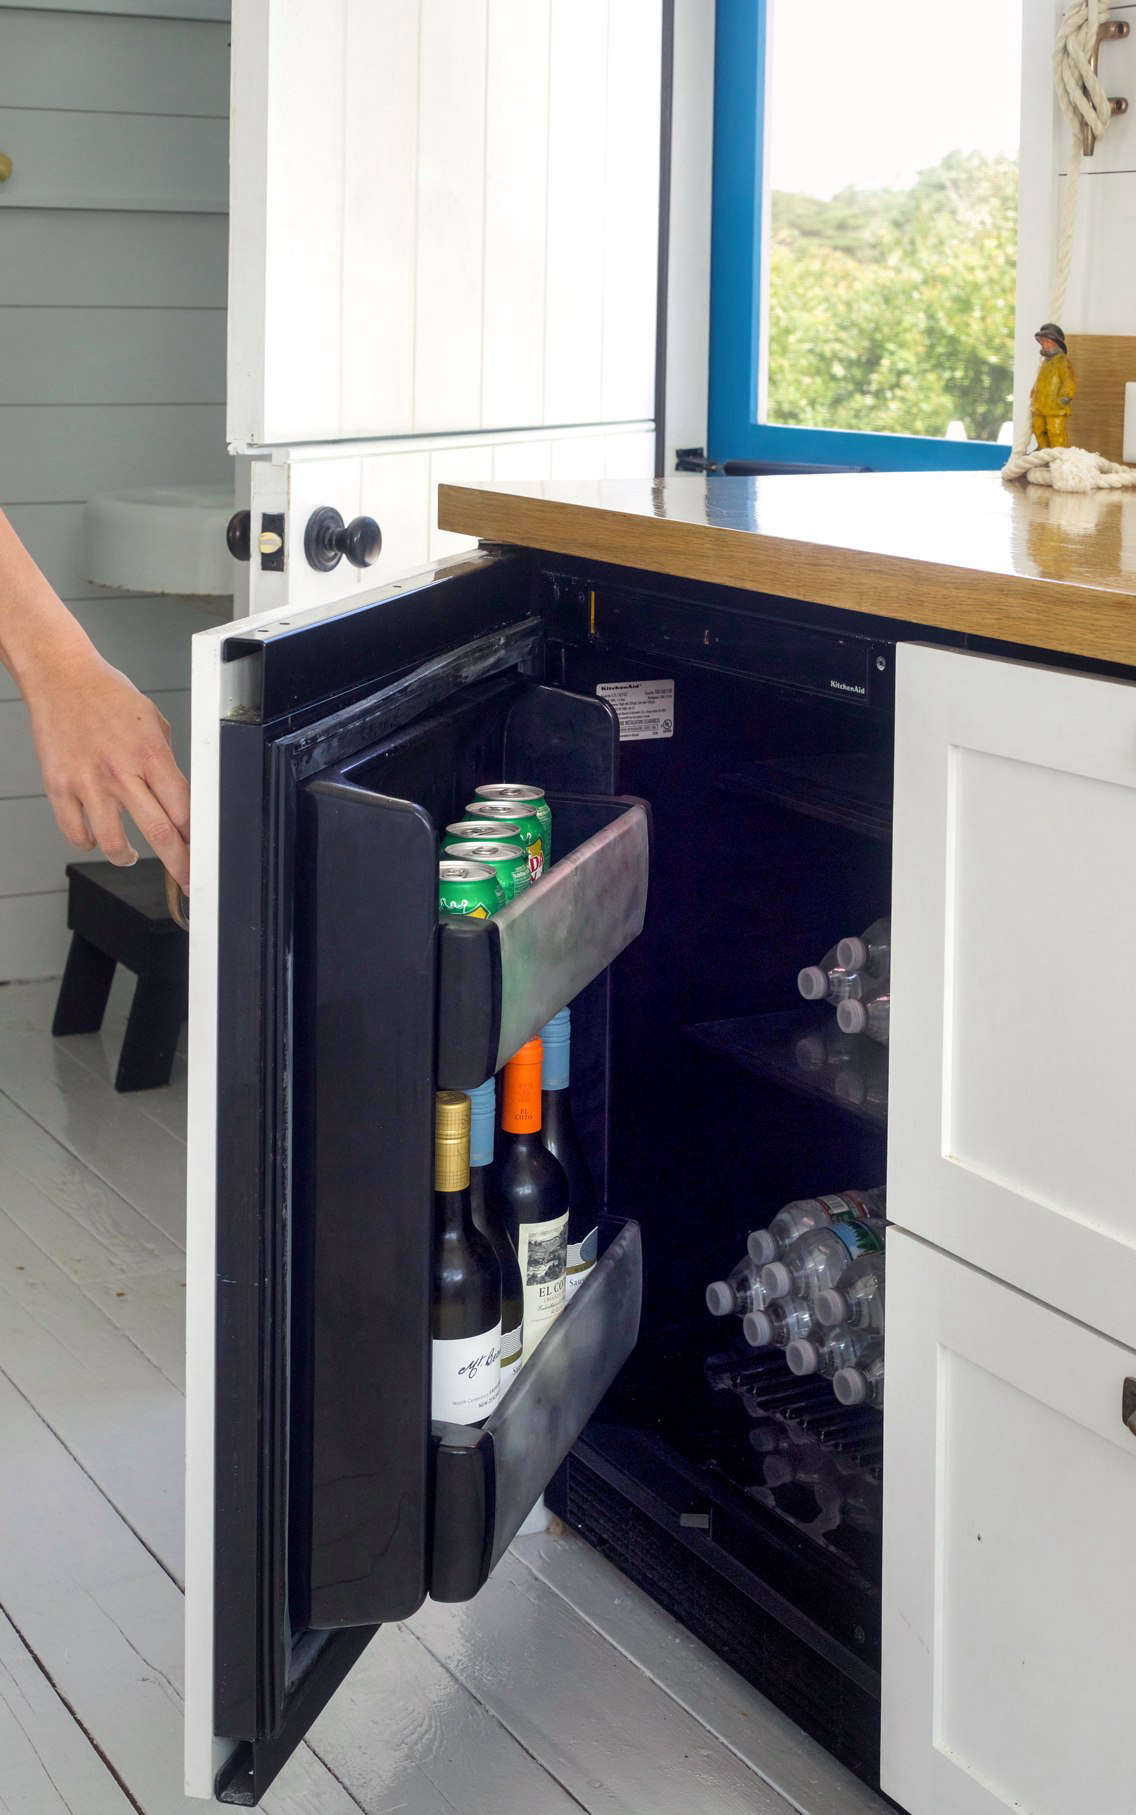 A Kitchenaid 24-Inch Panel Ready Undercounter Refrigerator serves as a mini drinks refrigerator.